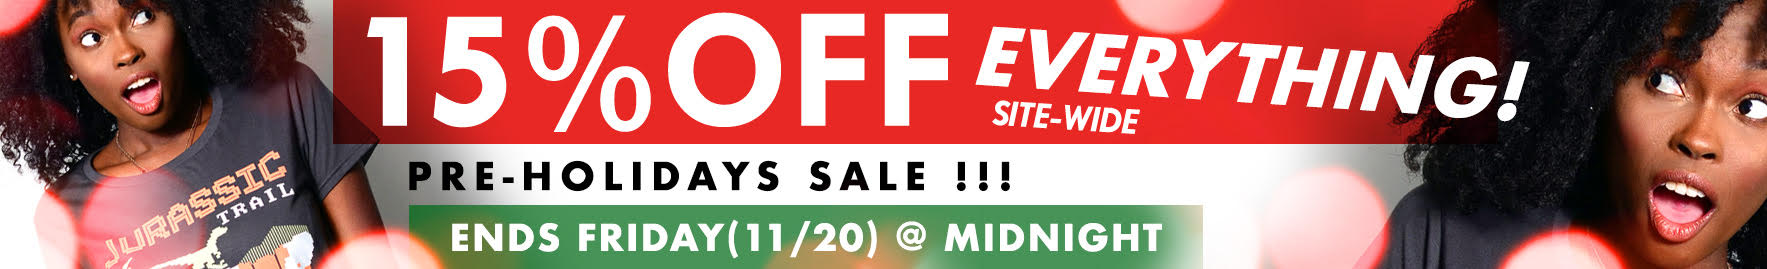 Pre-Holiday Sale - 15% off Site-Wide - Sale Ends Friday 11/20 at Midnight